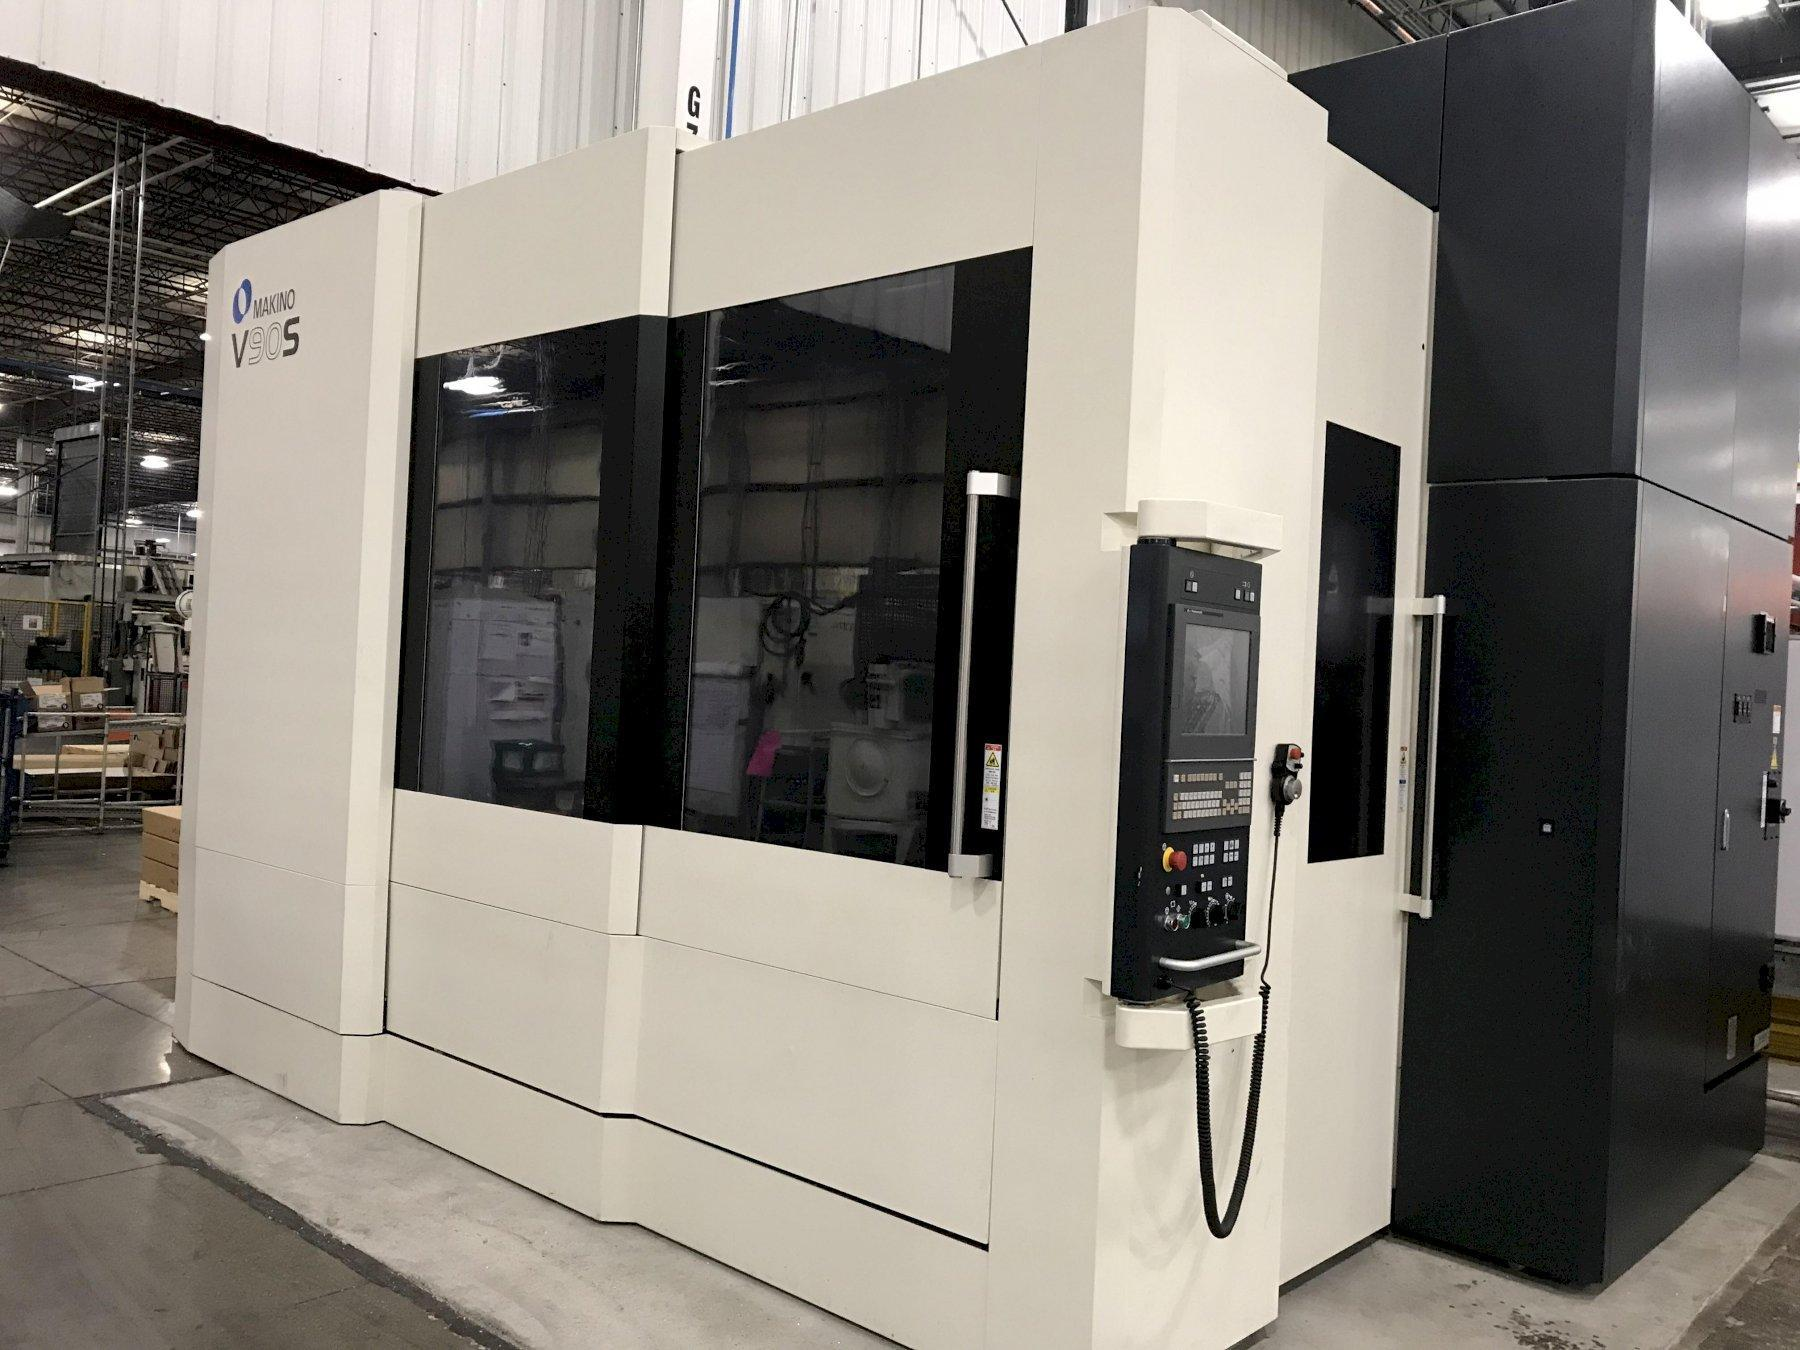 Makino V90s (5) Axis Vertical Machining Center